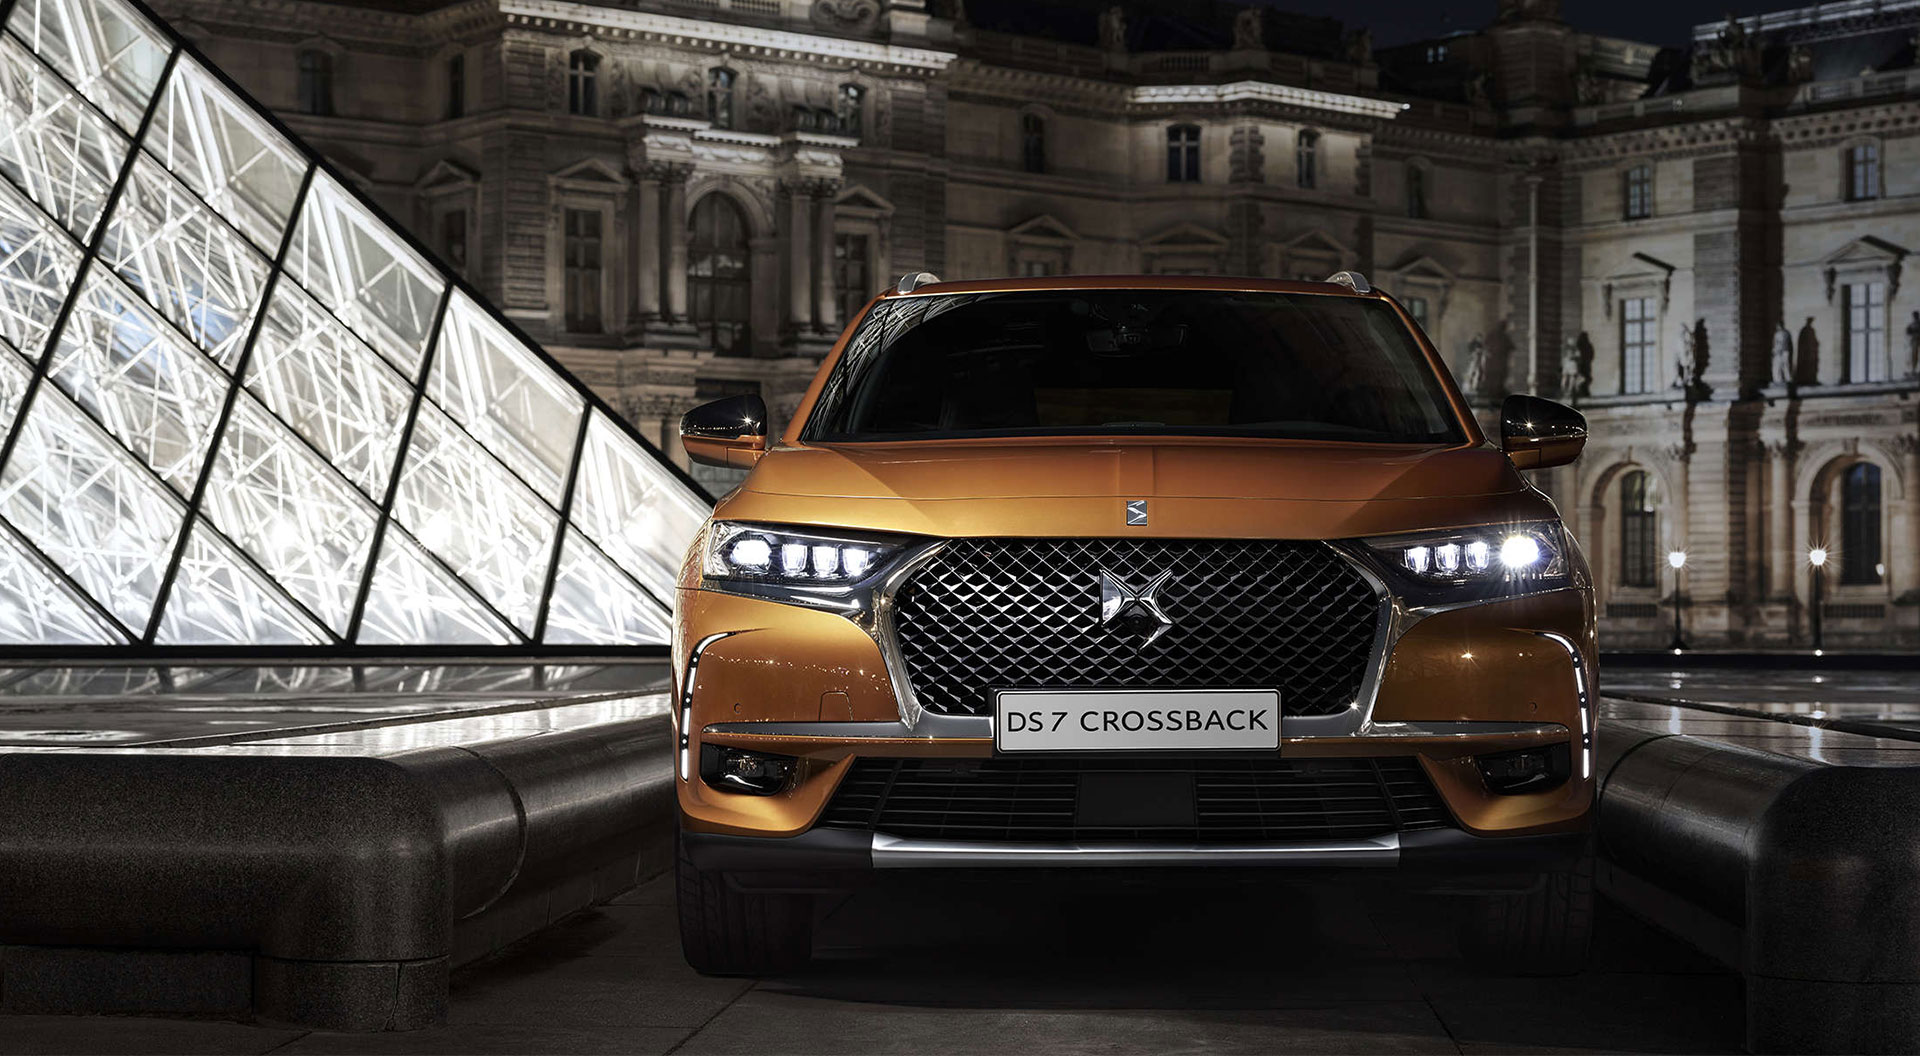 SUV DS 7 CROSSBACK - Frontansicht